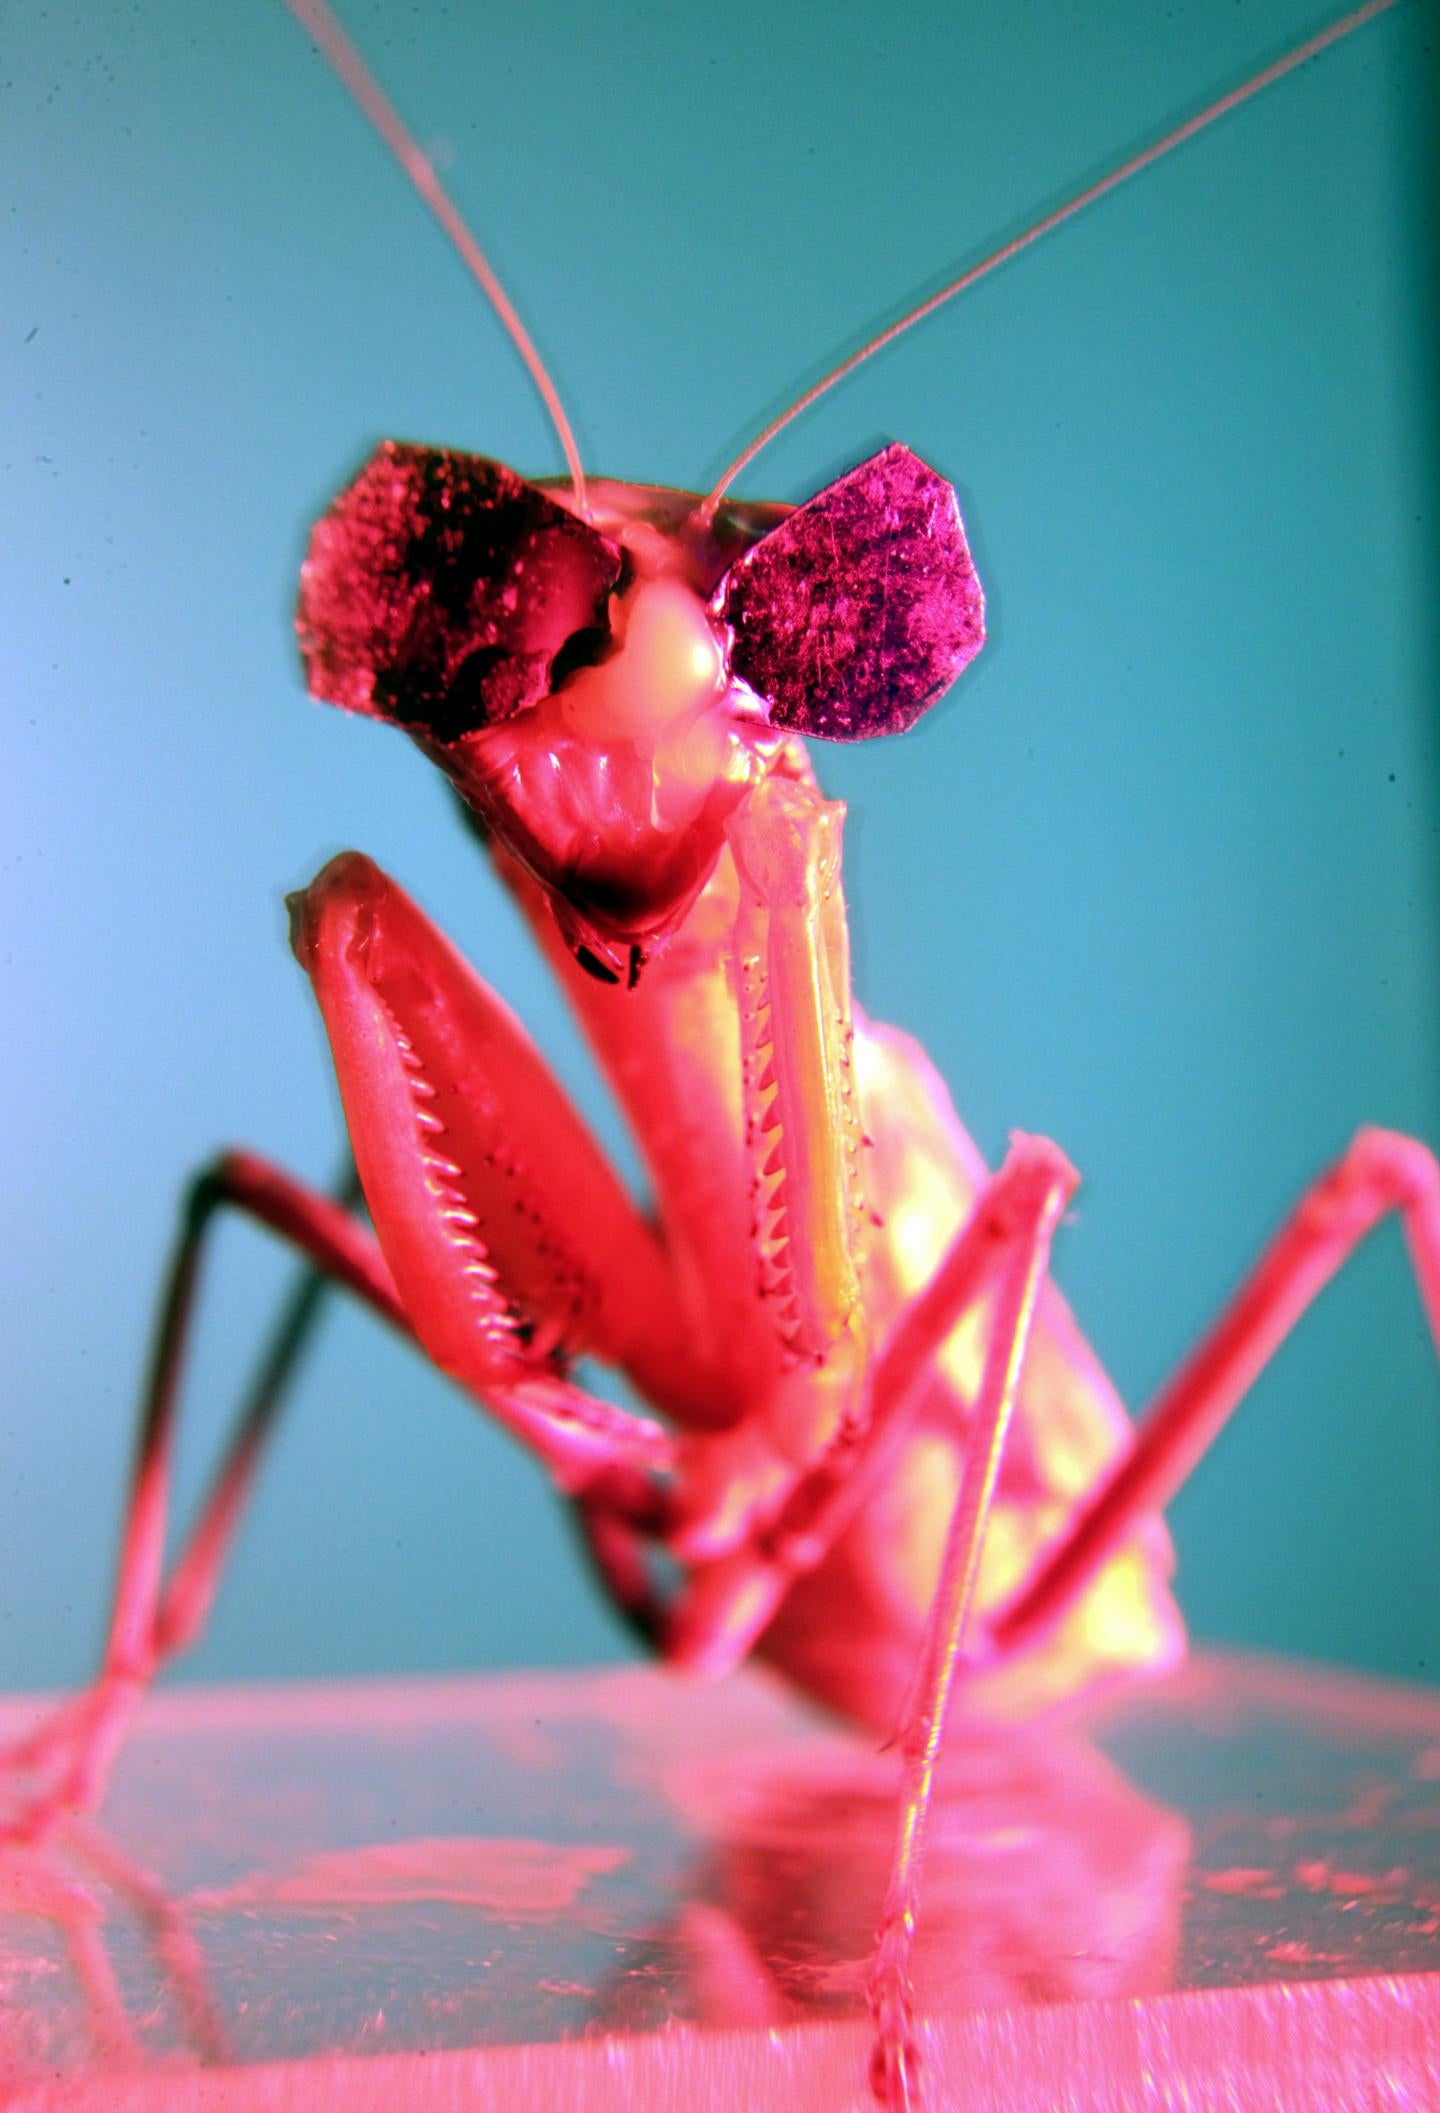 Scientists Gave Praying Mantises Tiny 3D Glasses to Prove They Have 3D Vision